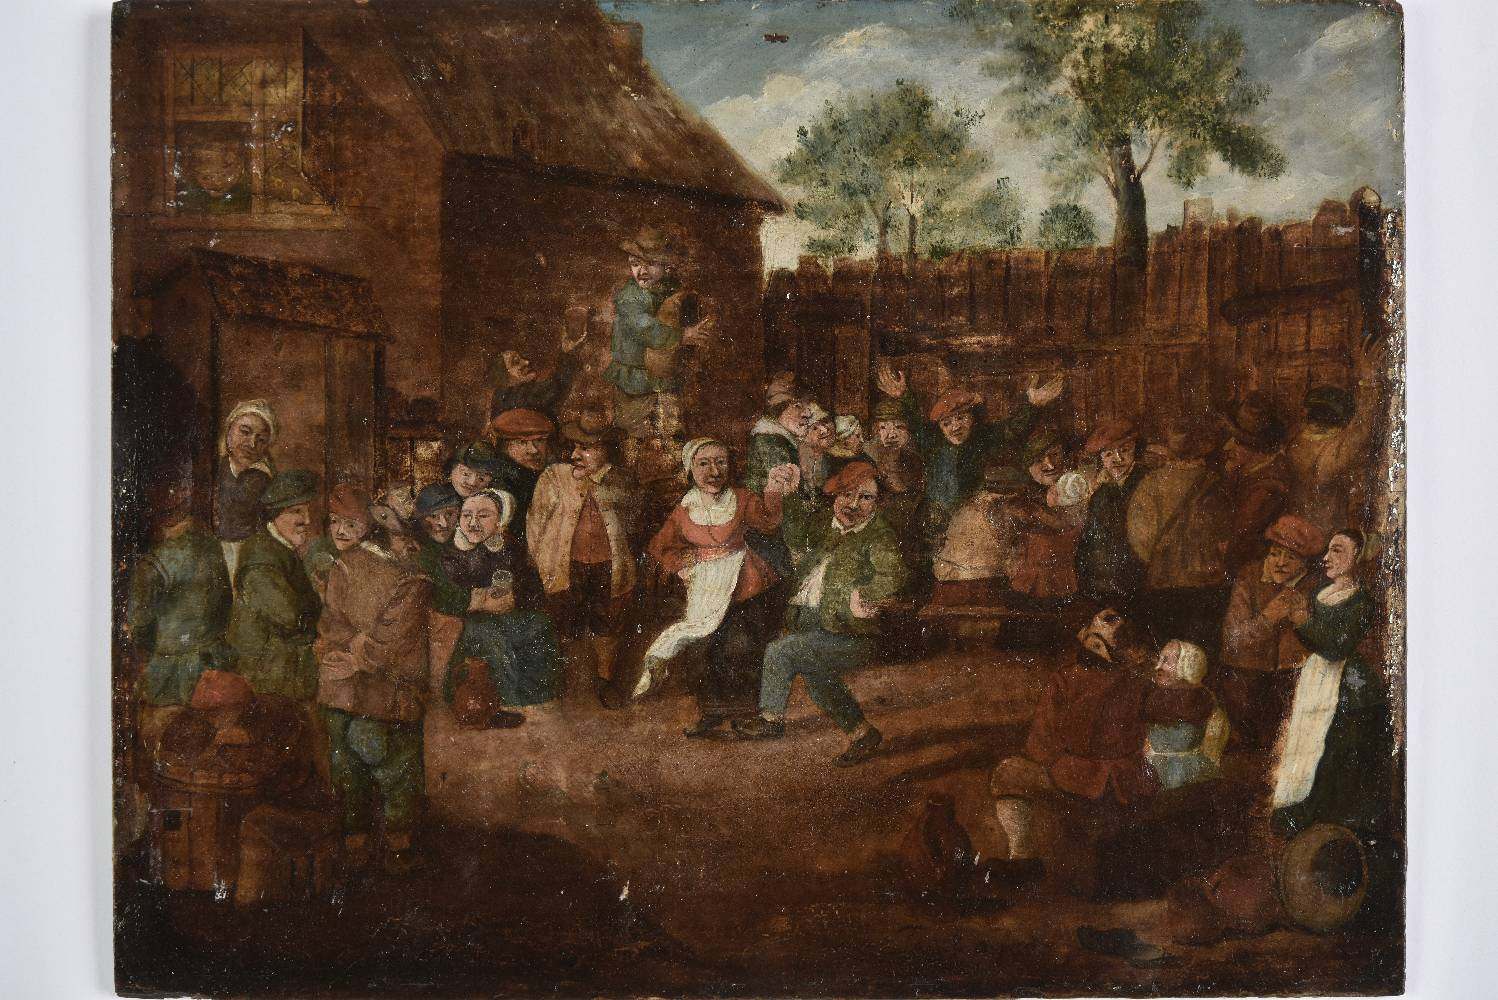 Lot 13 - *Flemish School. The Village Wedding Feast, 17th or 18th century, oil on bevelled wood panel,